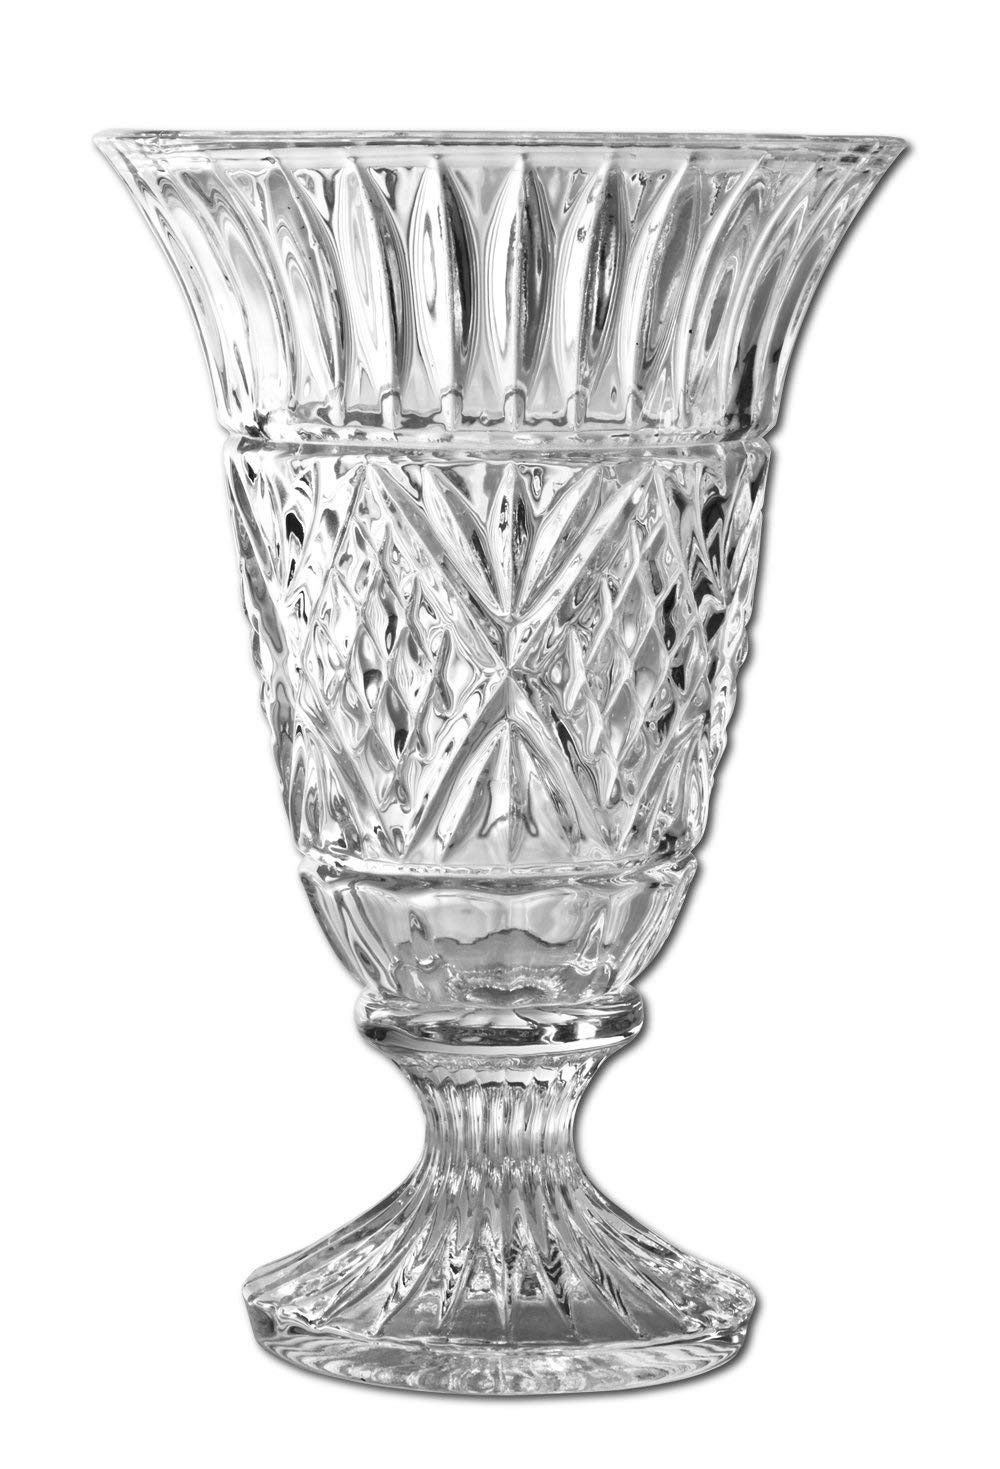 Mikasa Florale Crystal Vase Of Amazon Com Godinger Dublin 7 3 4 Inch Crystal Vase Decorative for Amazon Com Godinger Dublin 7 3 4 Inch Crystal Vase Decorative Vases Kitchen Dining